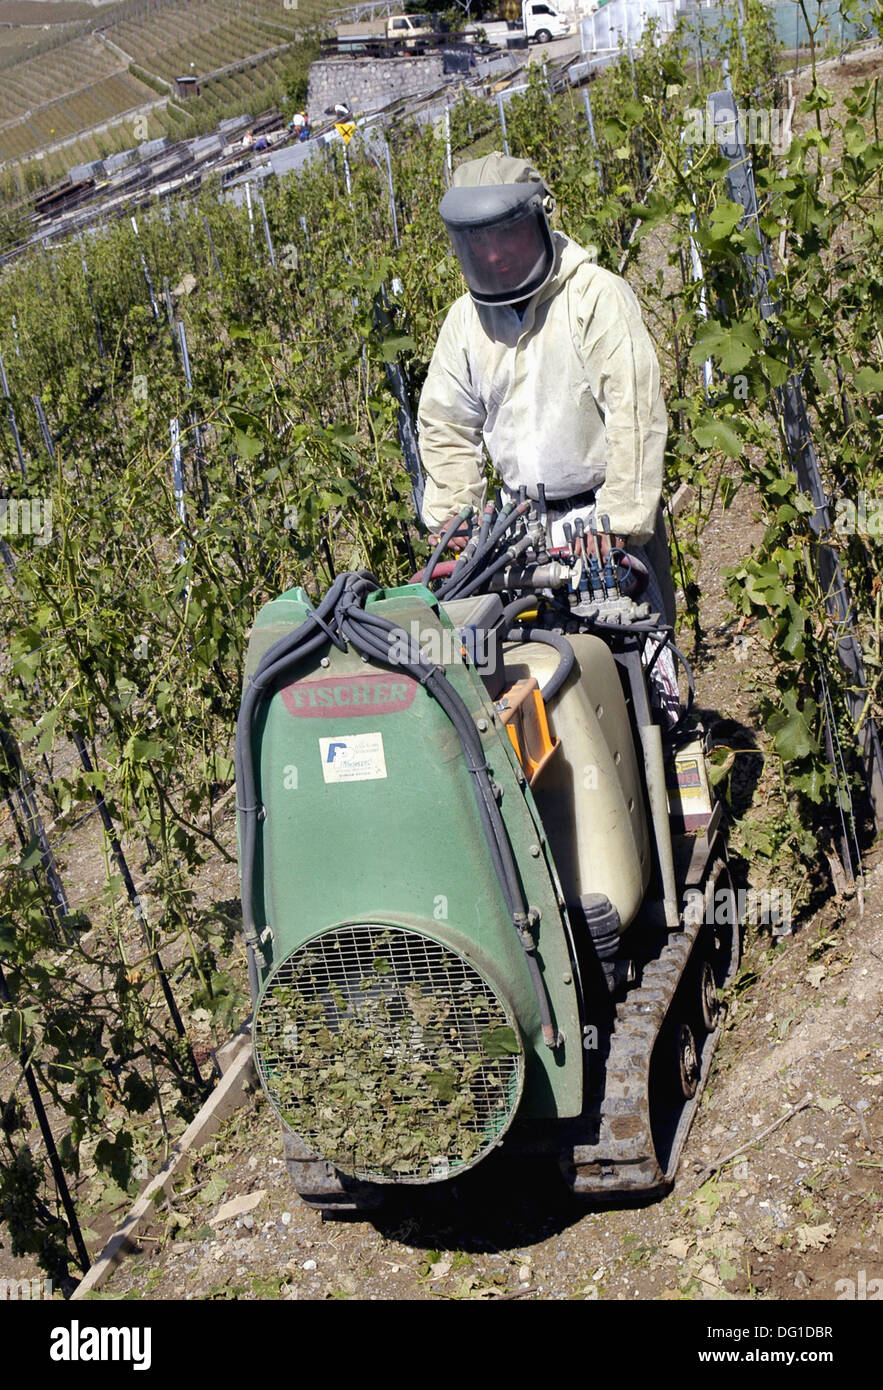 After a heavy Hailstorm: Preventive spray for pest in a vineyard. - Stock Image